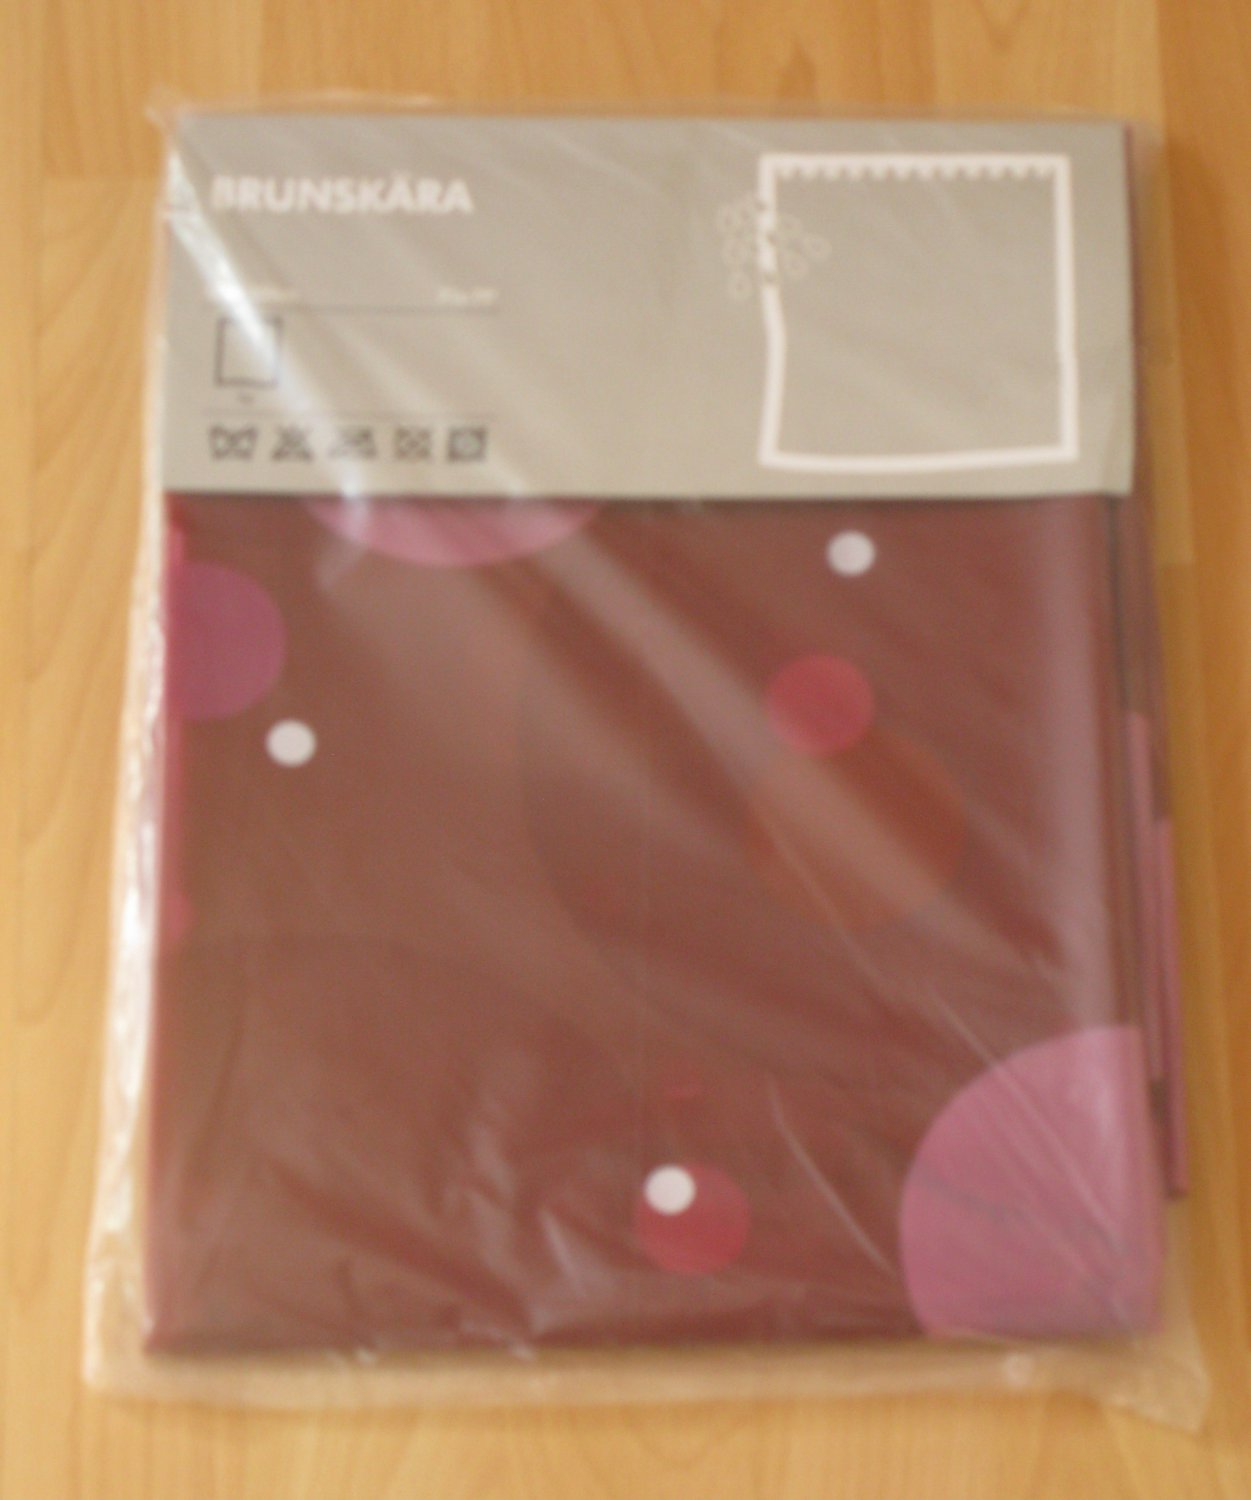 Ikea BRUNSKARA SHOWER Curtain RED Dots MOD Retro 79""